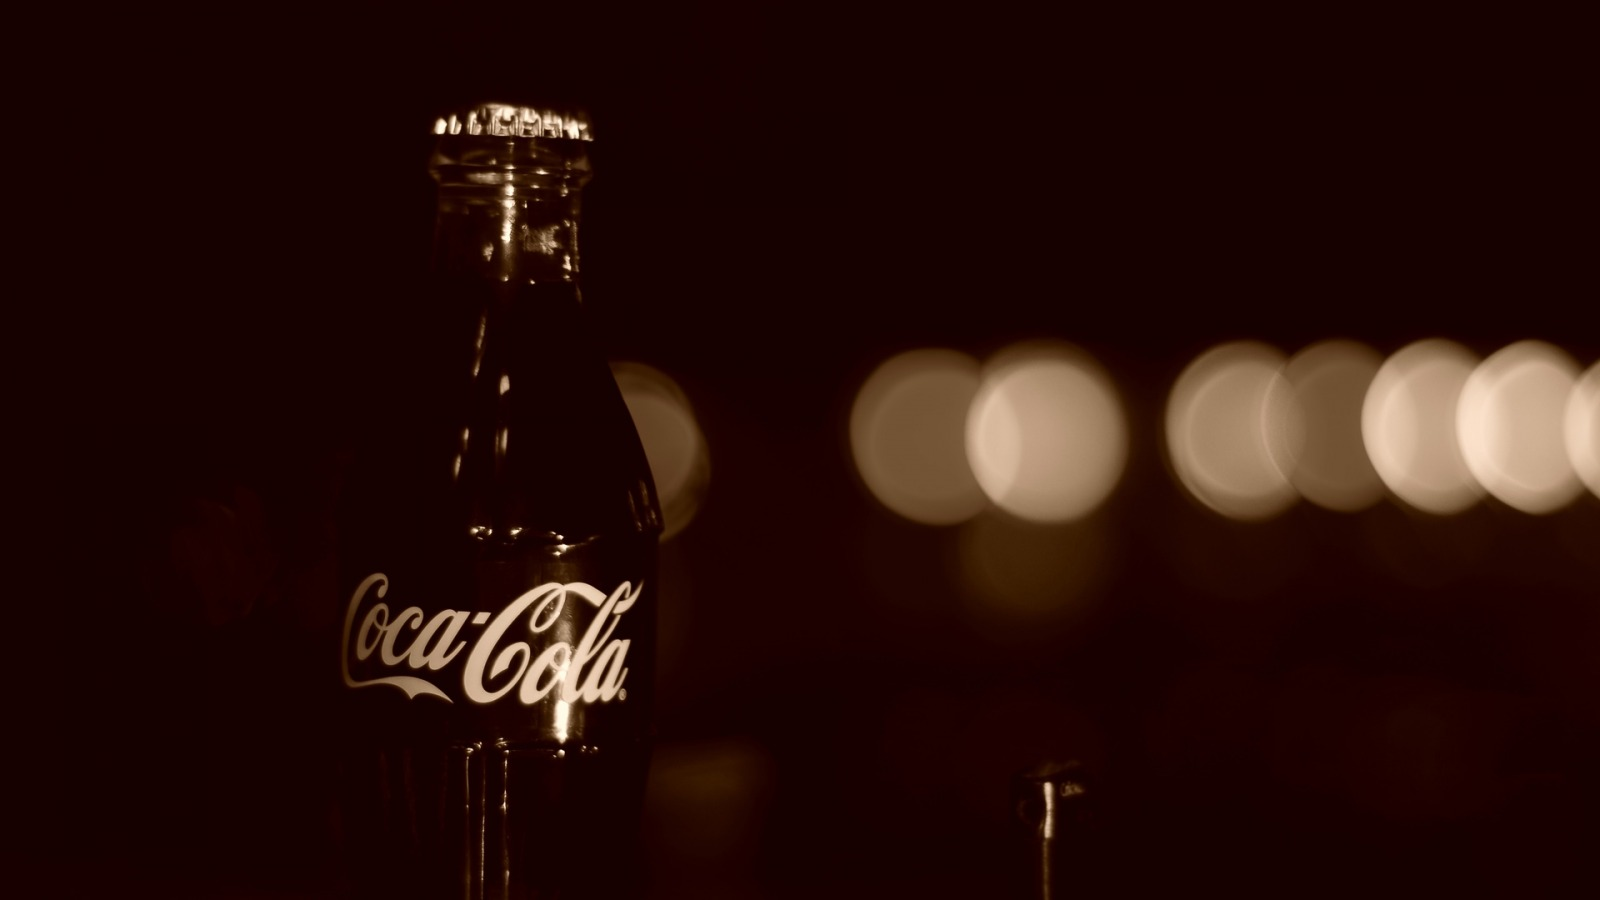 Gorgeous Coca Cola Wallpaper Full Hd Pictures